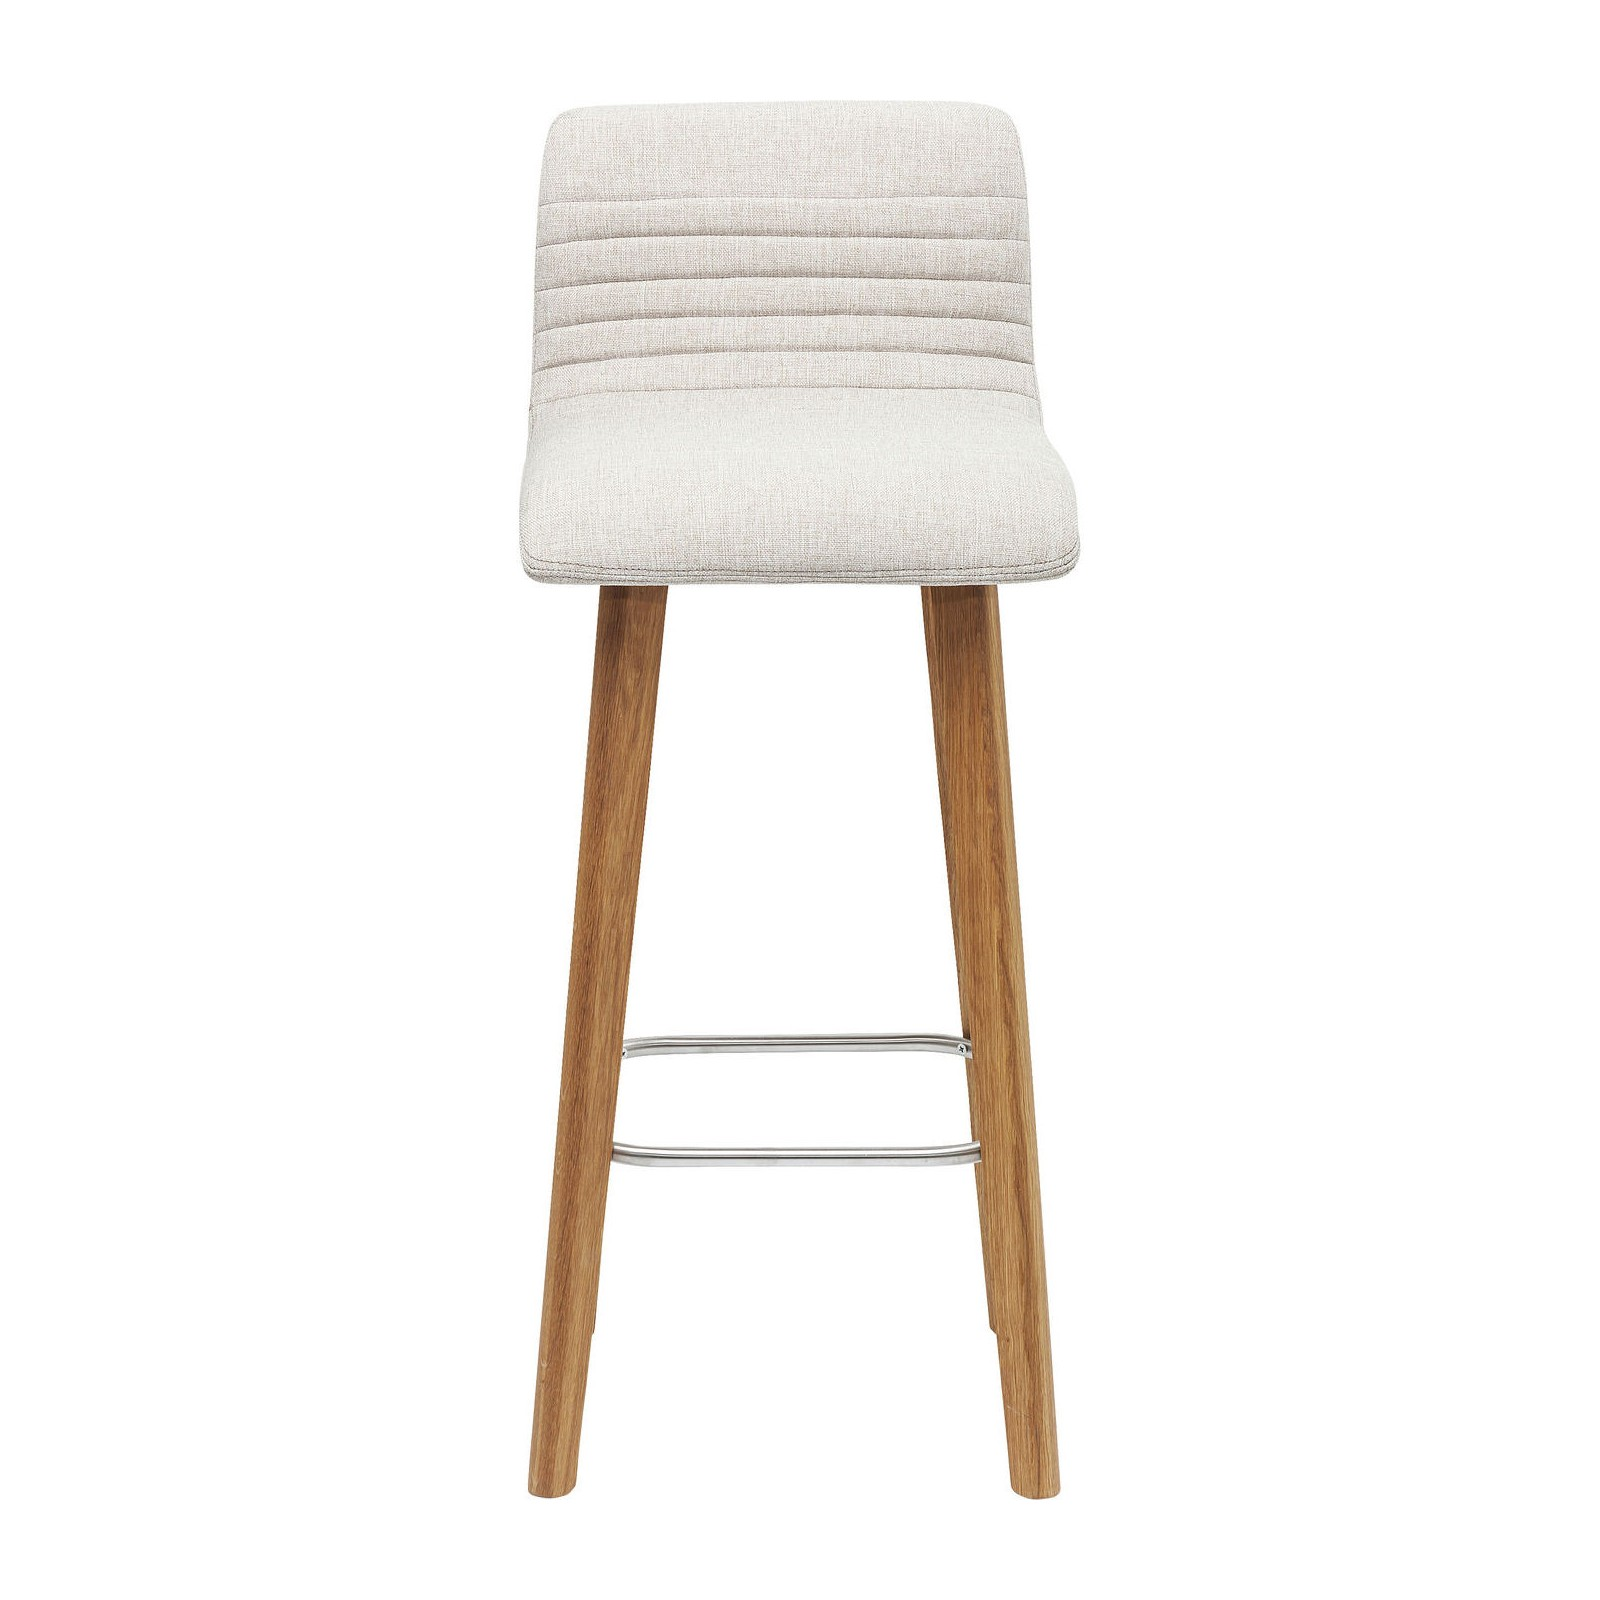 Tabouret de bar ornament